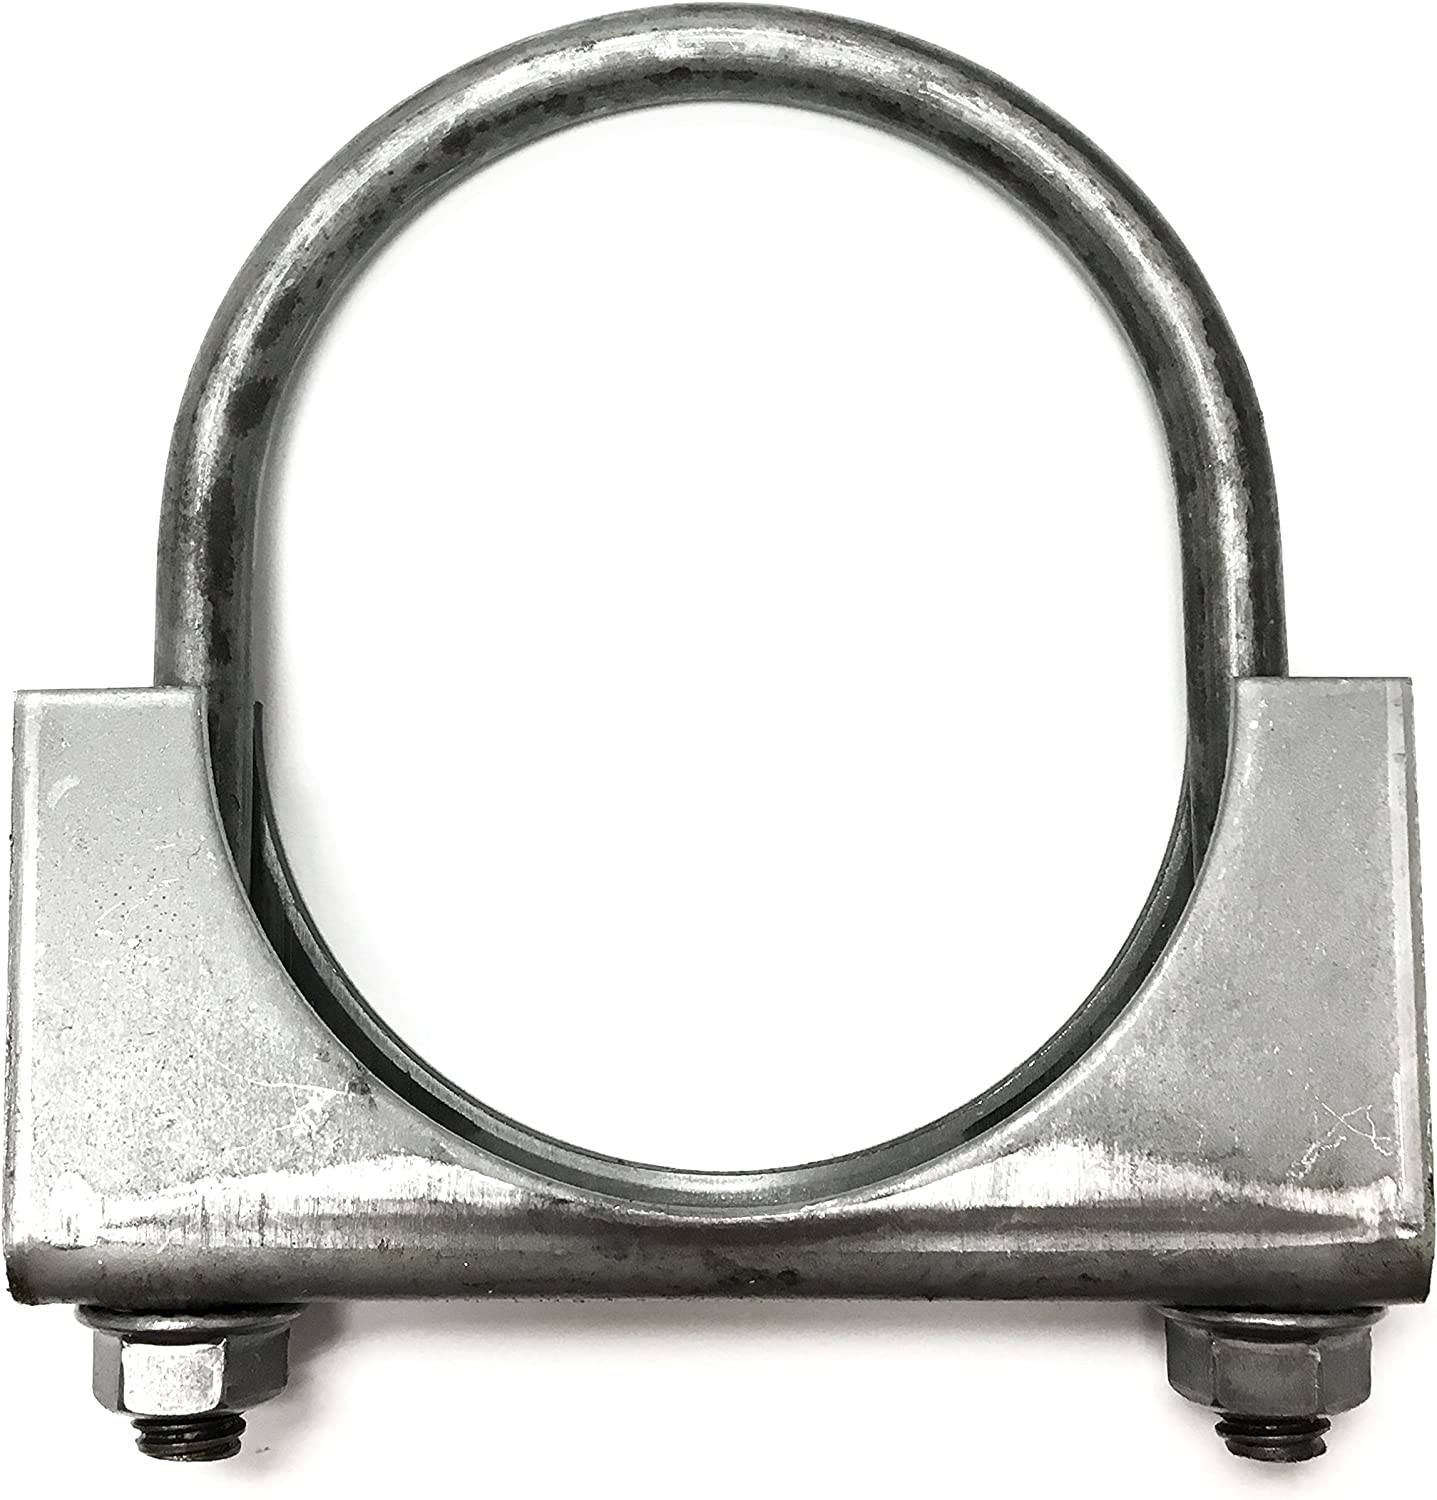 "1 1/4"" Heavy Duty Saddle Style U-Bolt Muffler Clamps with Anti-Rust Coat and Multiple Uses (1 1/4"") 81wQCrF9j7L"